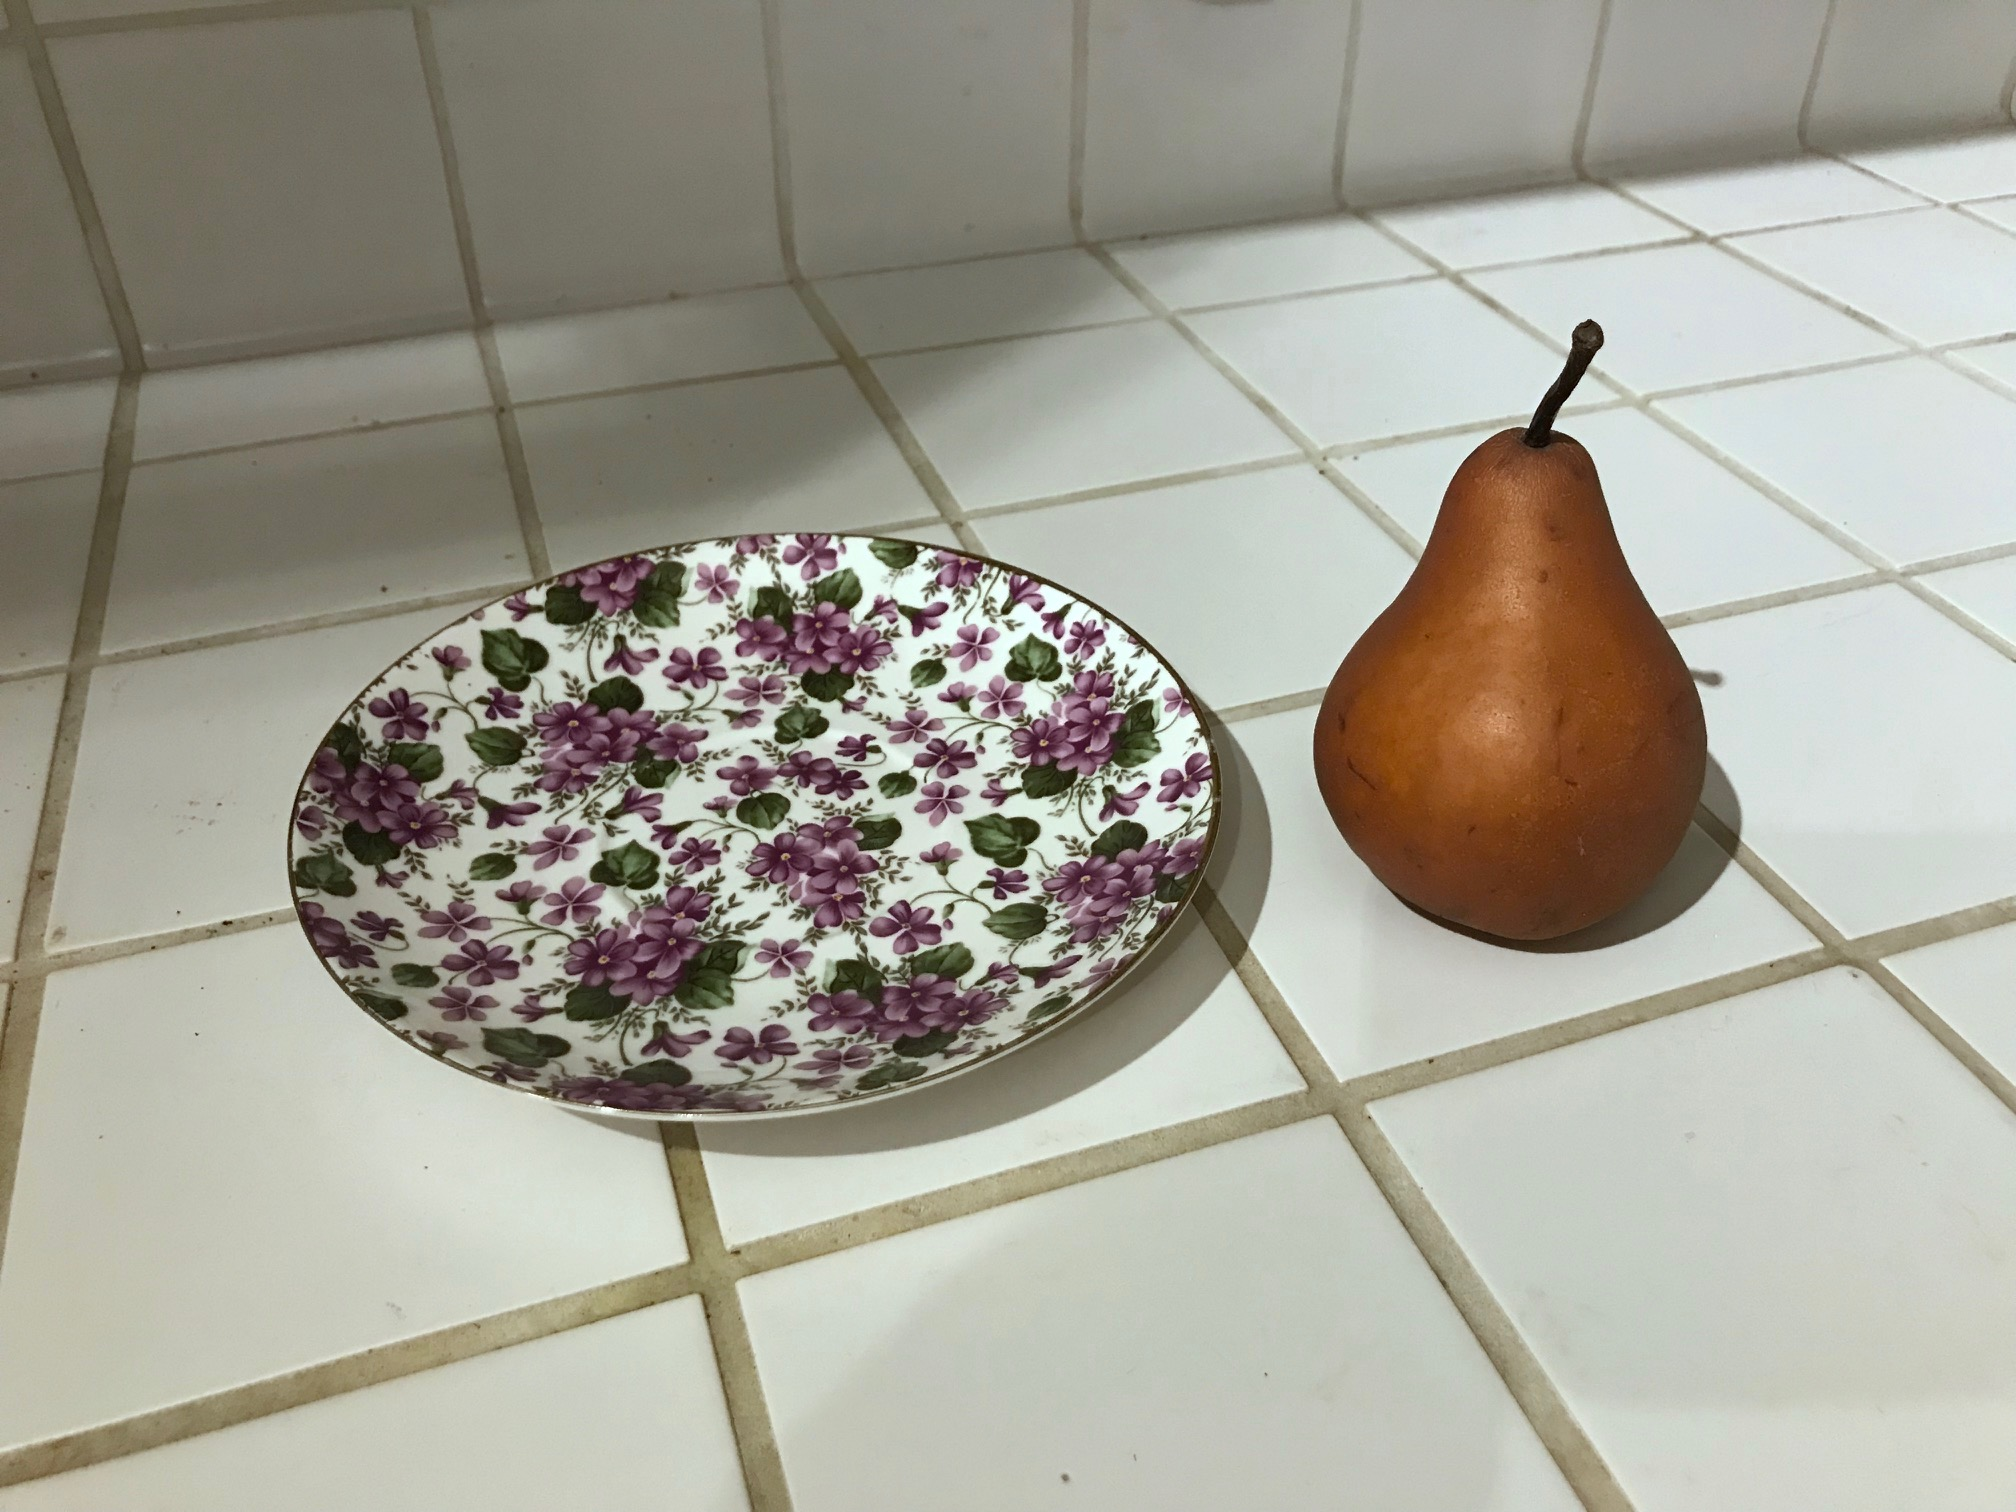 Grace's Teaware Purple Flower Saucer: 30,000 ppm Lead [For Context: 90 ppm Lead is unsafe in children's items.]